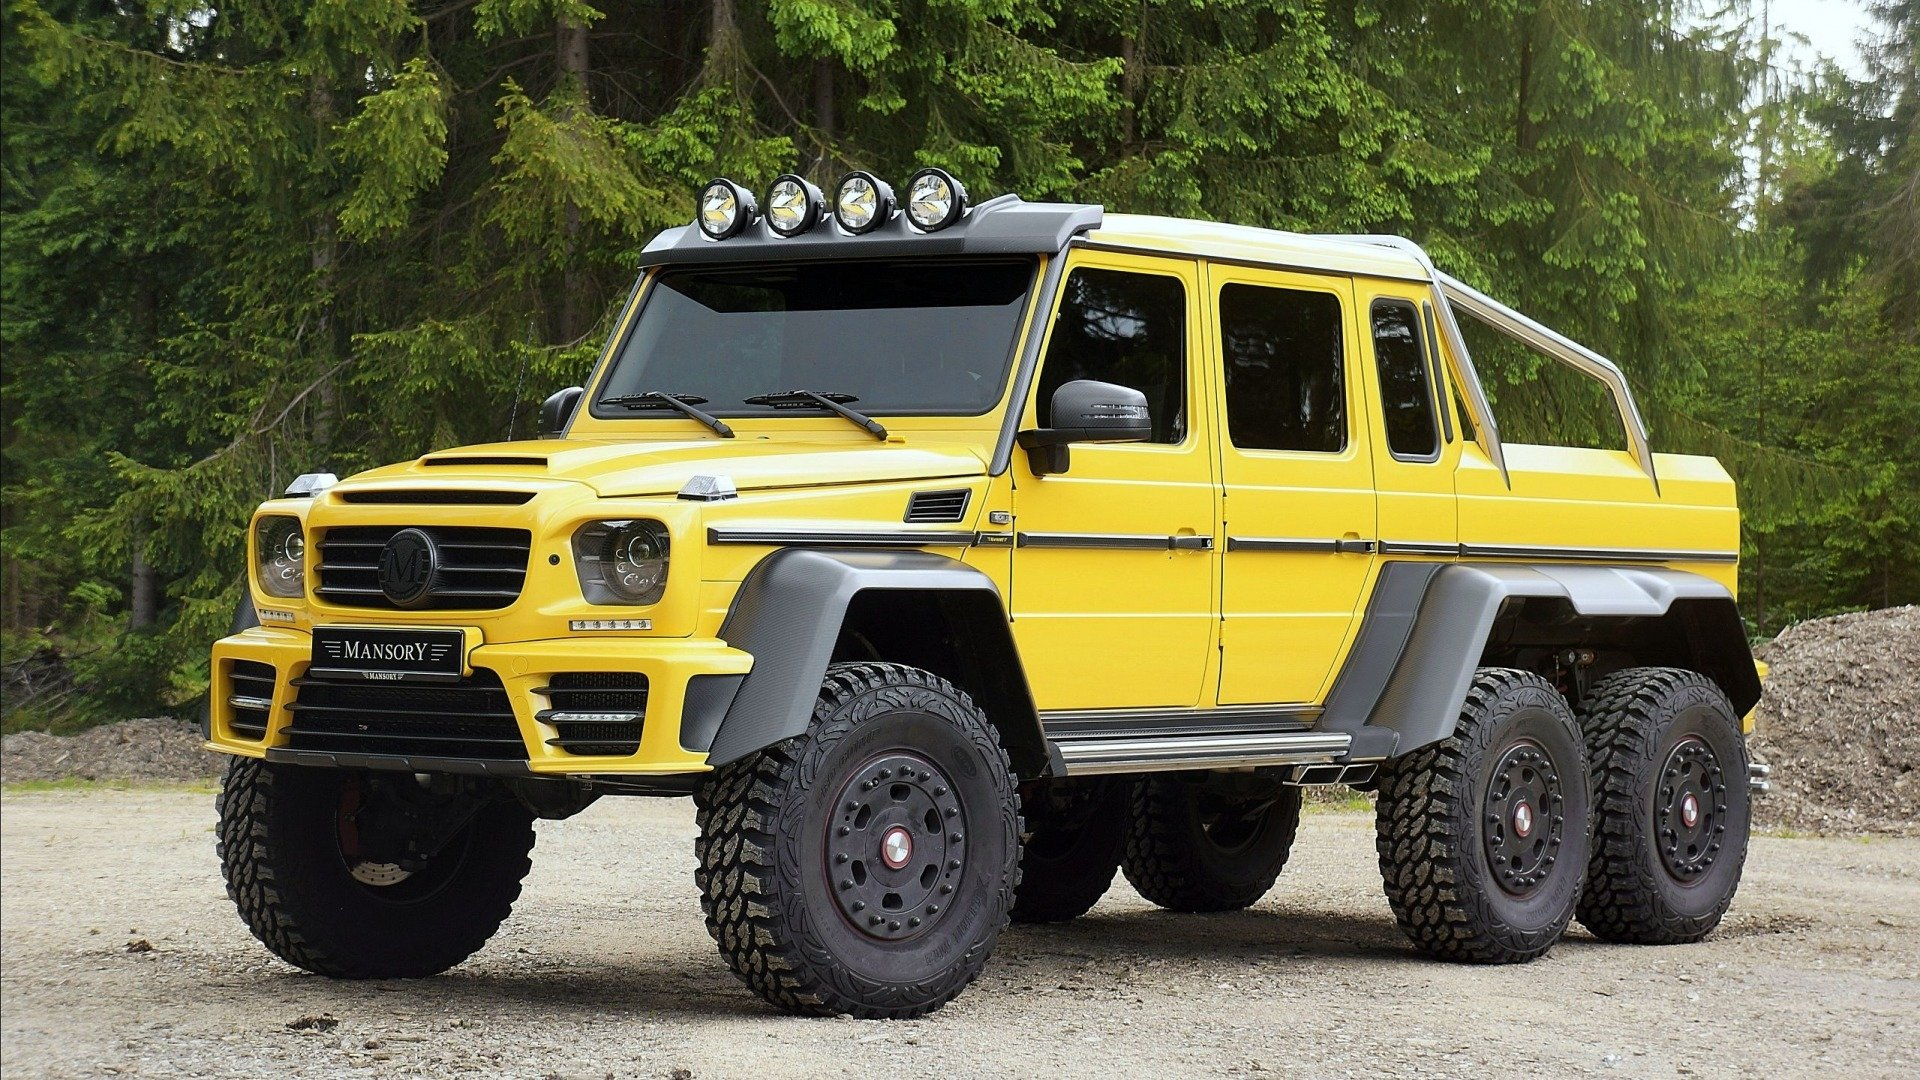 Vehicles - Mercedes-Benz G63 AMG 6x6  Mercedes-Benz G-Class Off-Road Yellow Car Wallpaper